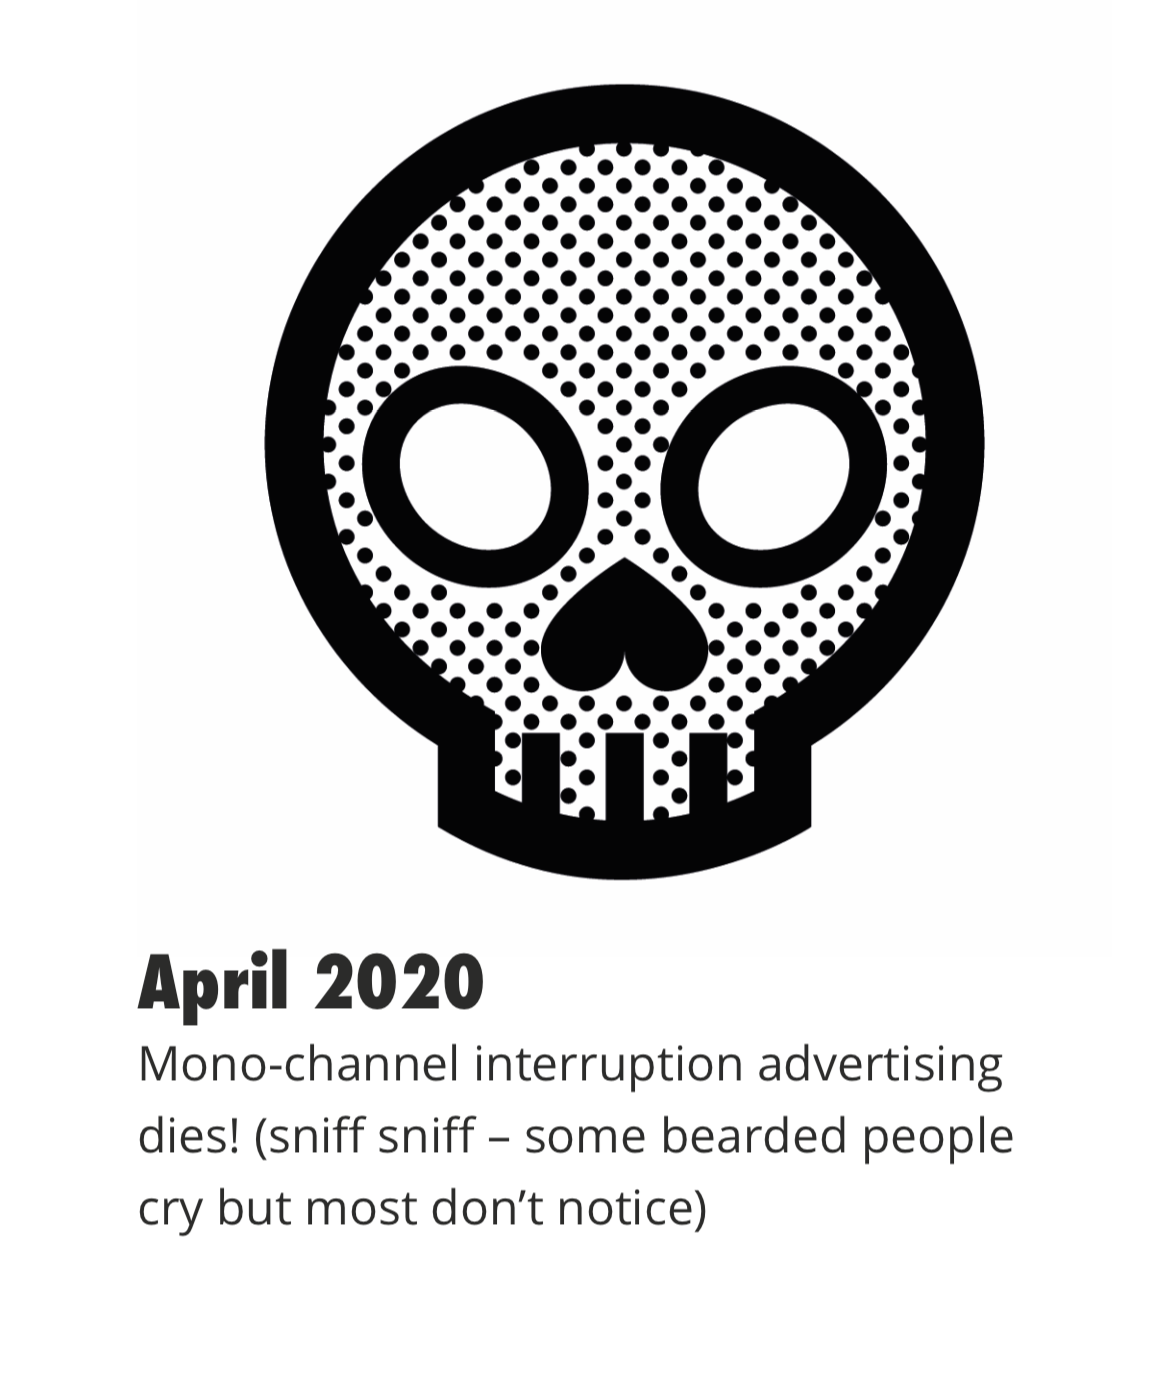 - the death of interruption advertising